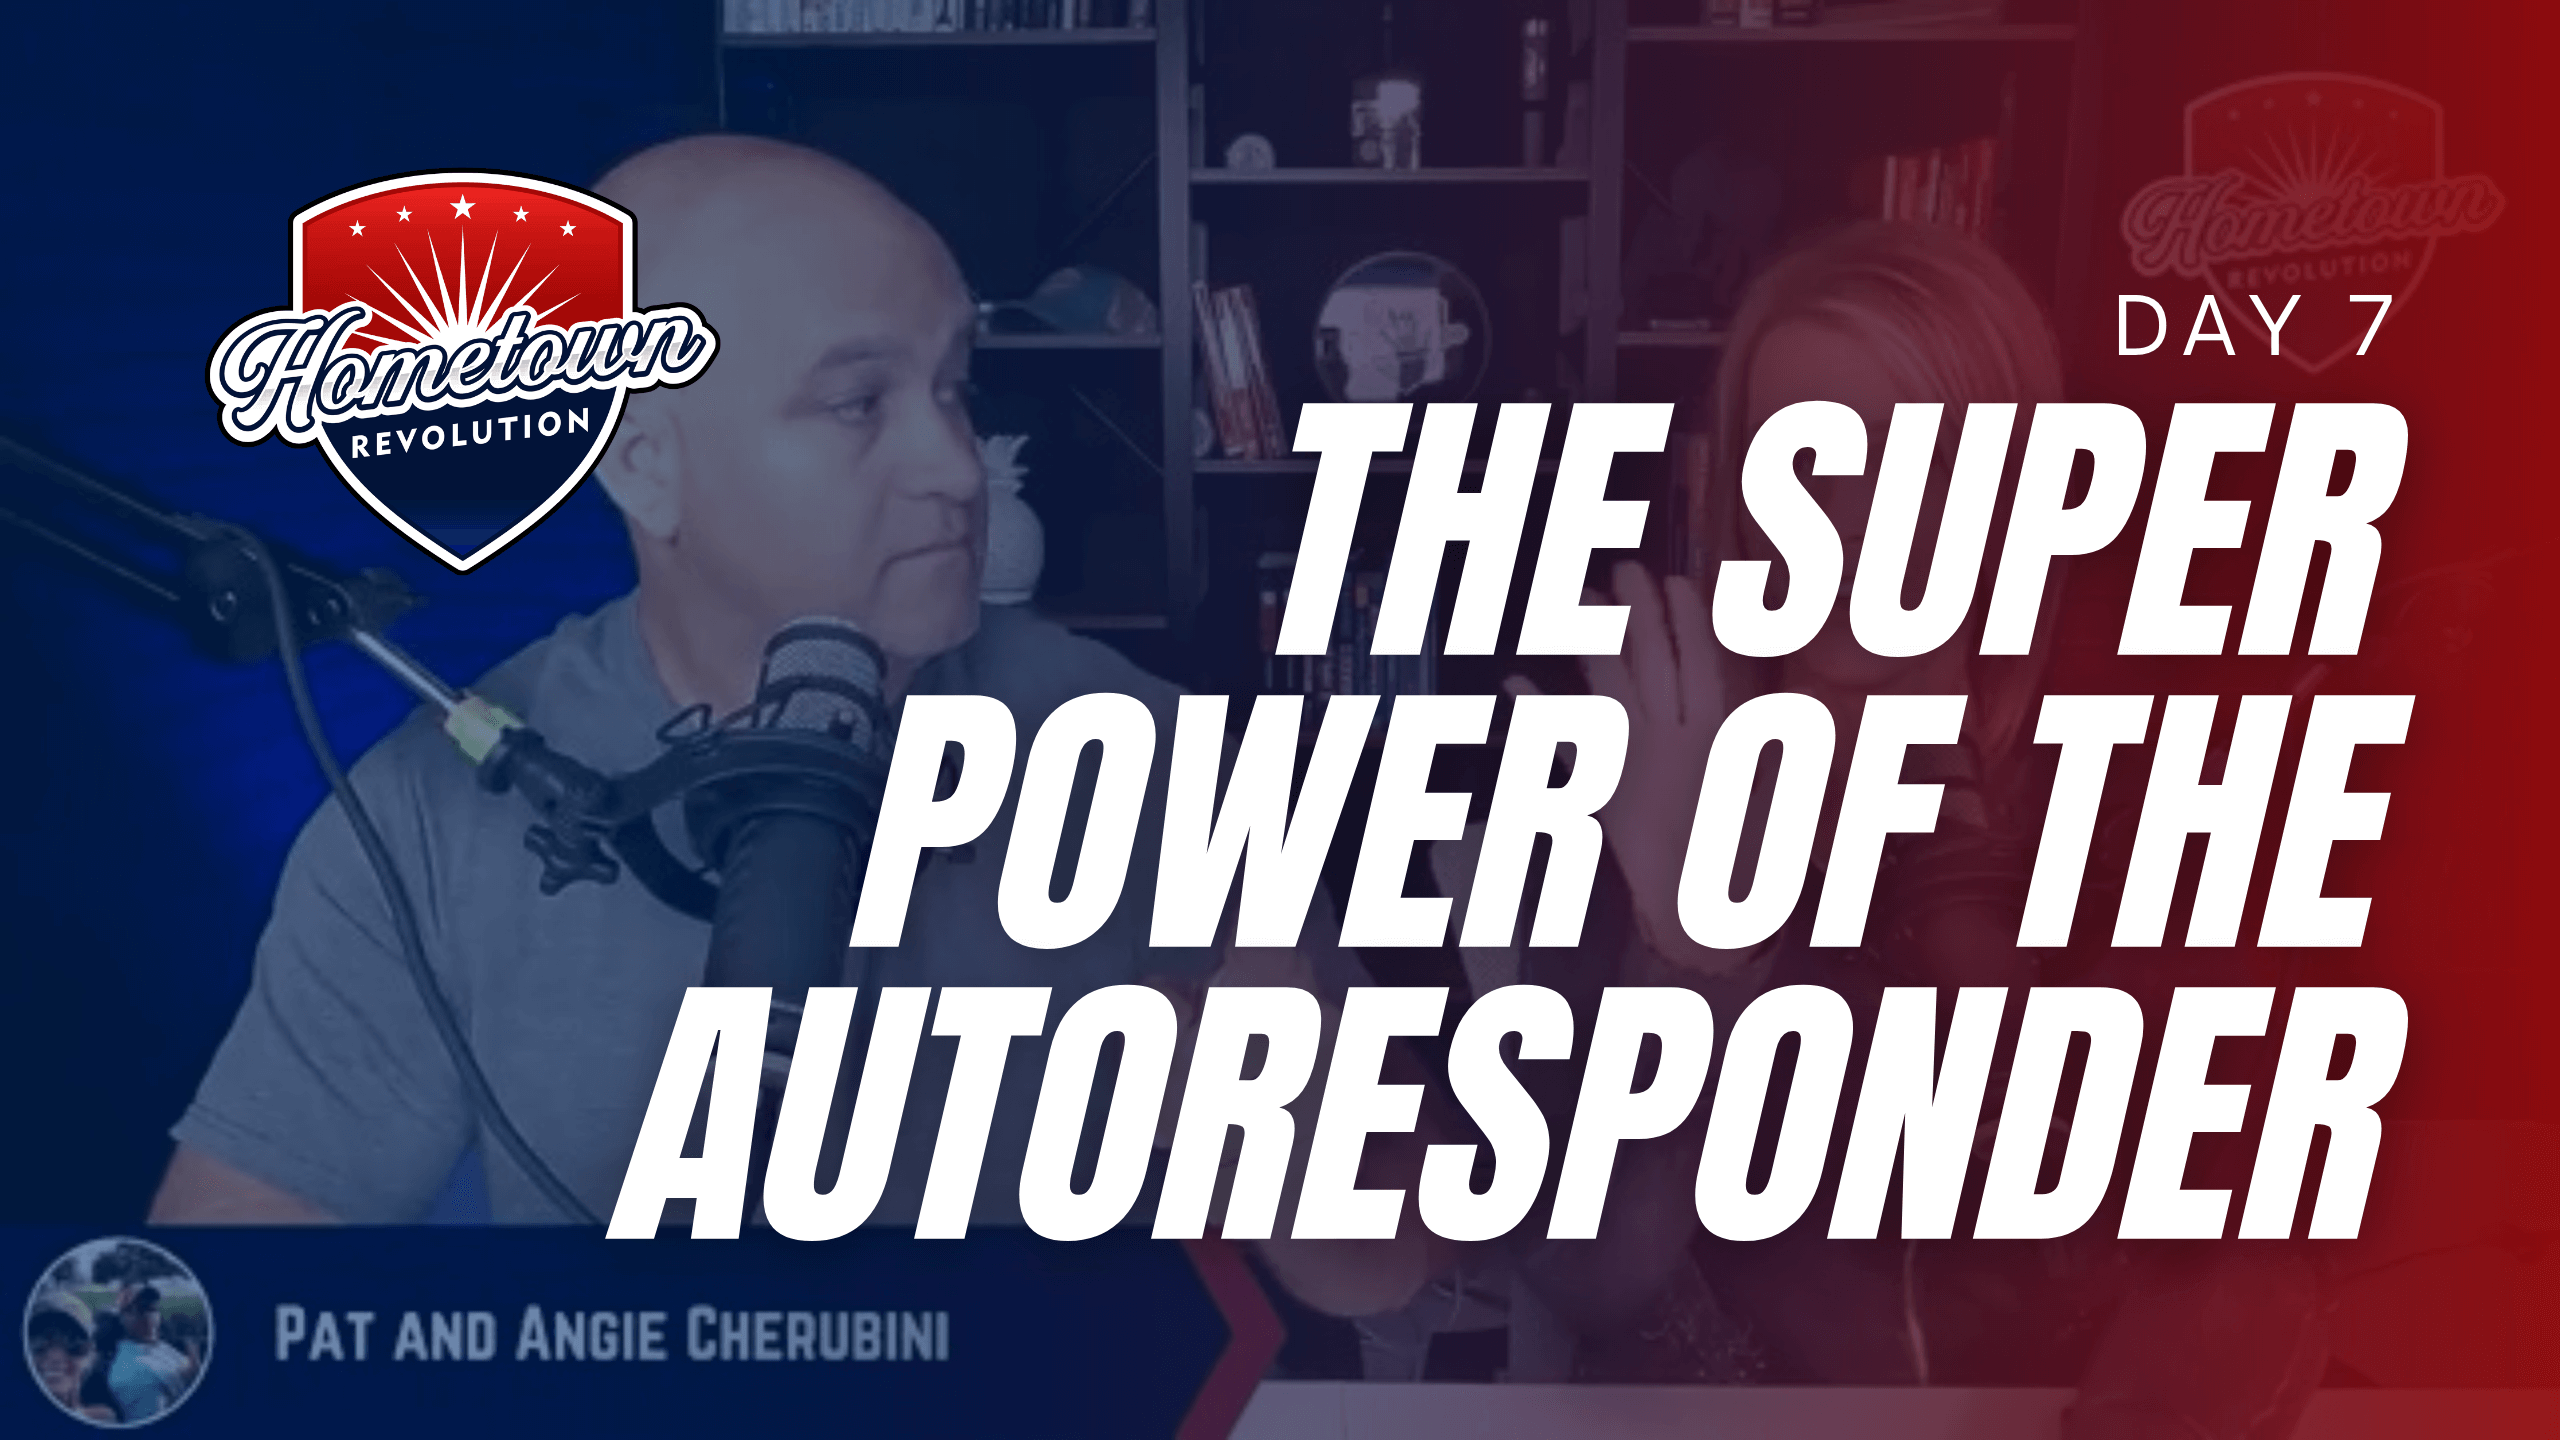 The superpower of the autoresponder by hometown revolution